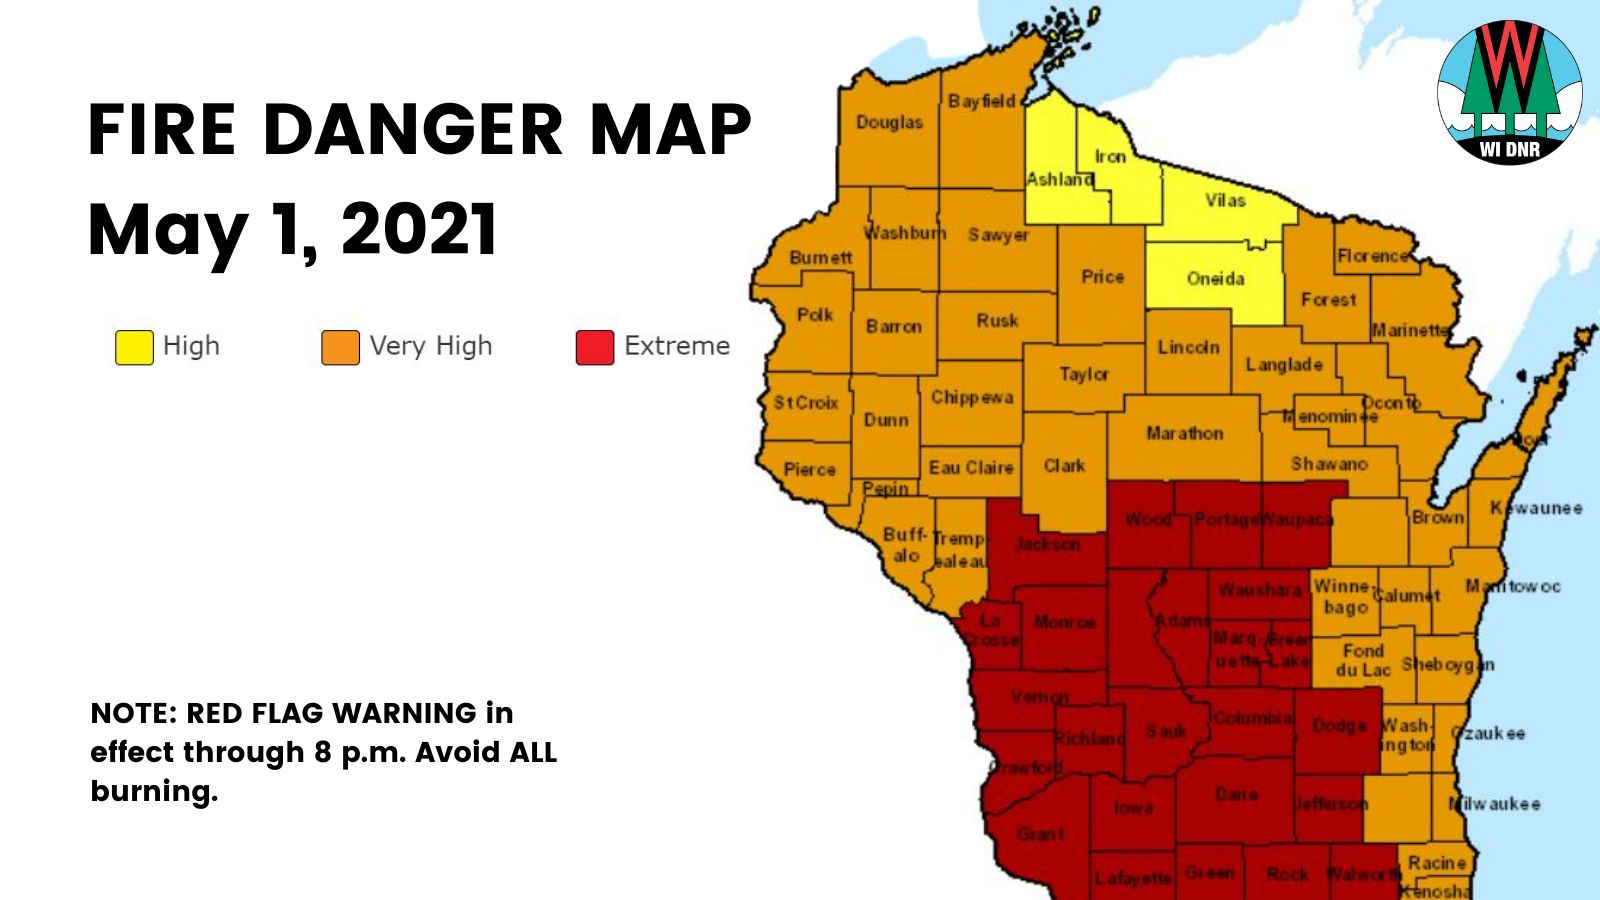 FINAL UPDATED FIRE DANGER MAP_May 1, 2021 (1).png